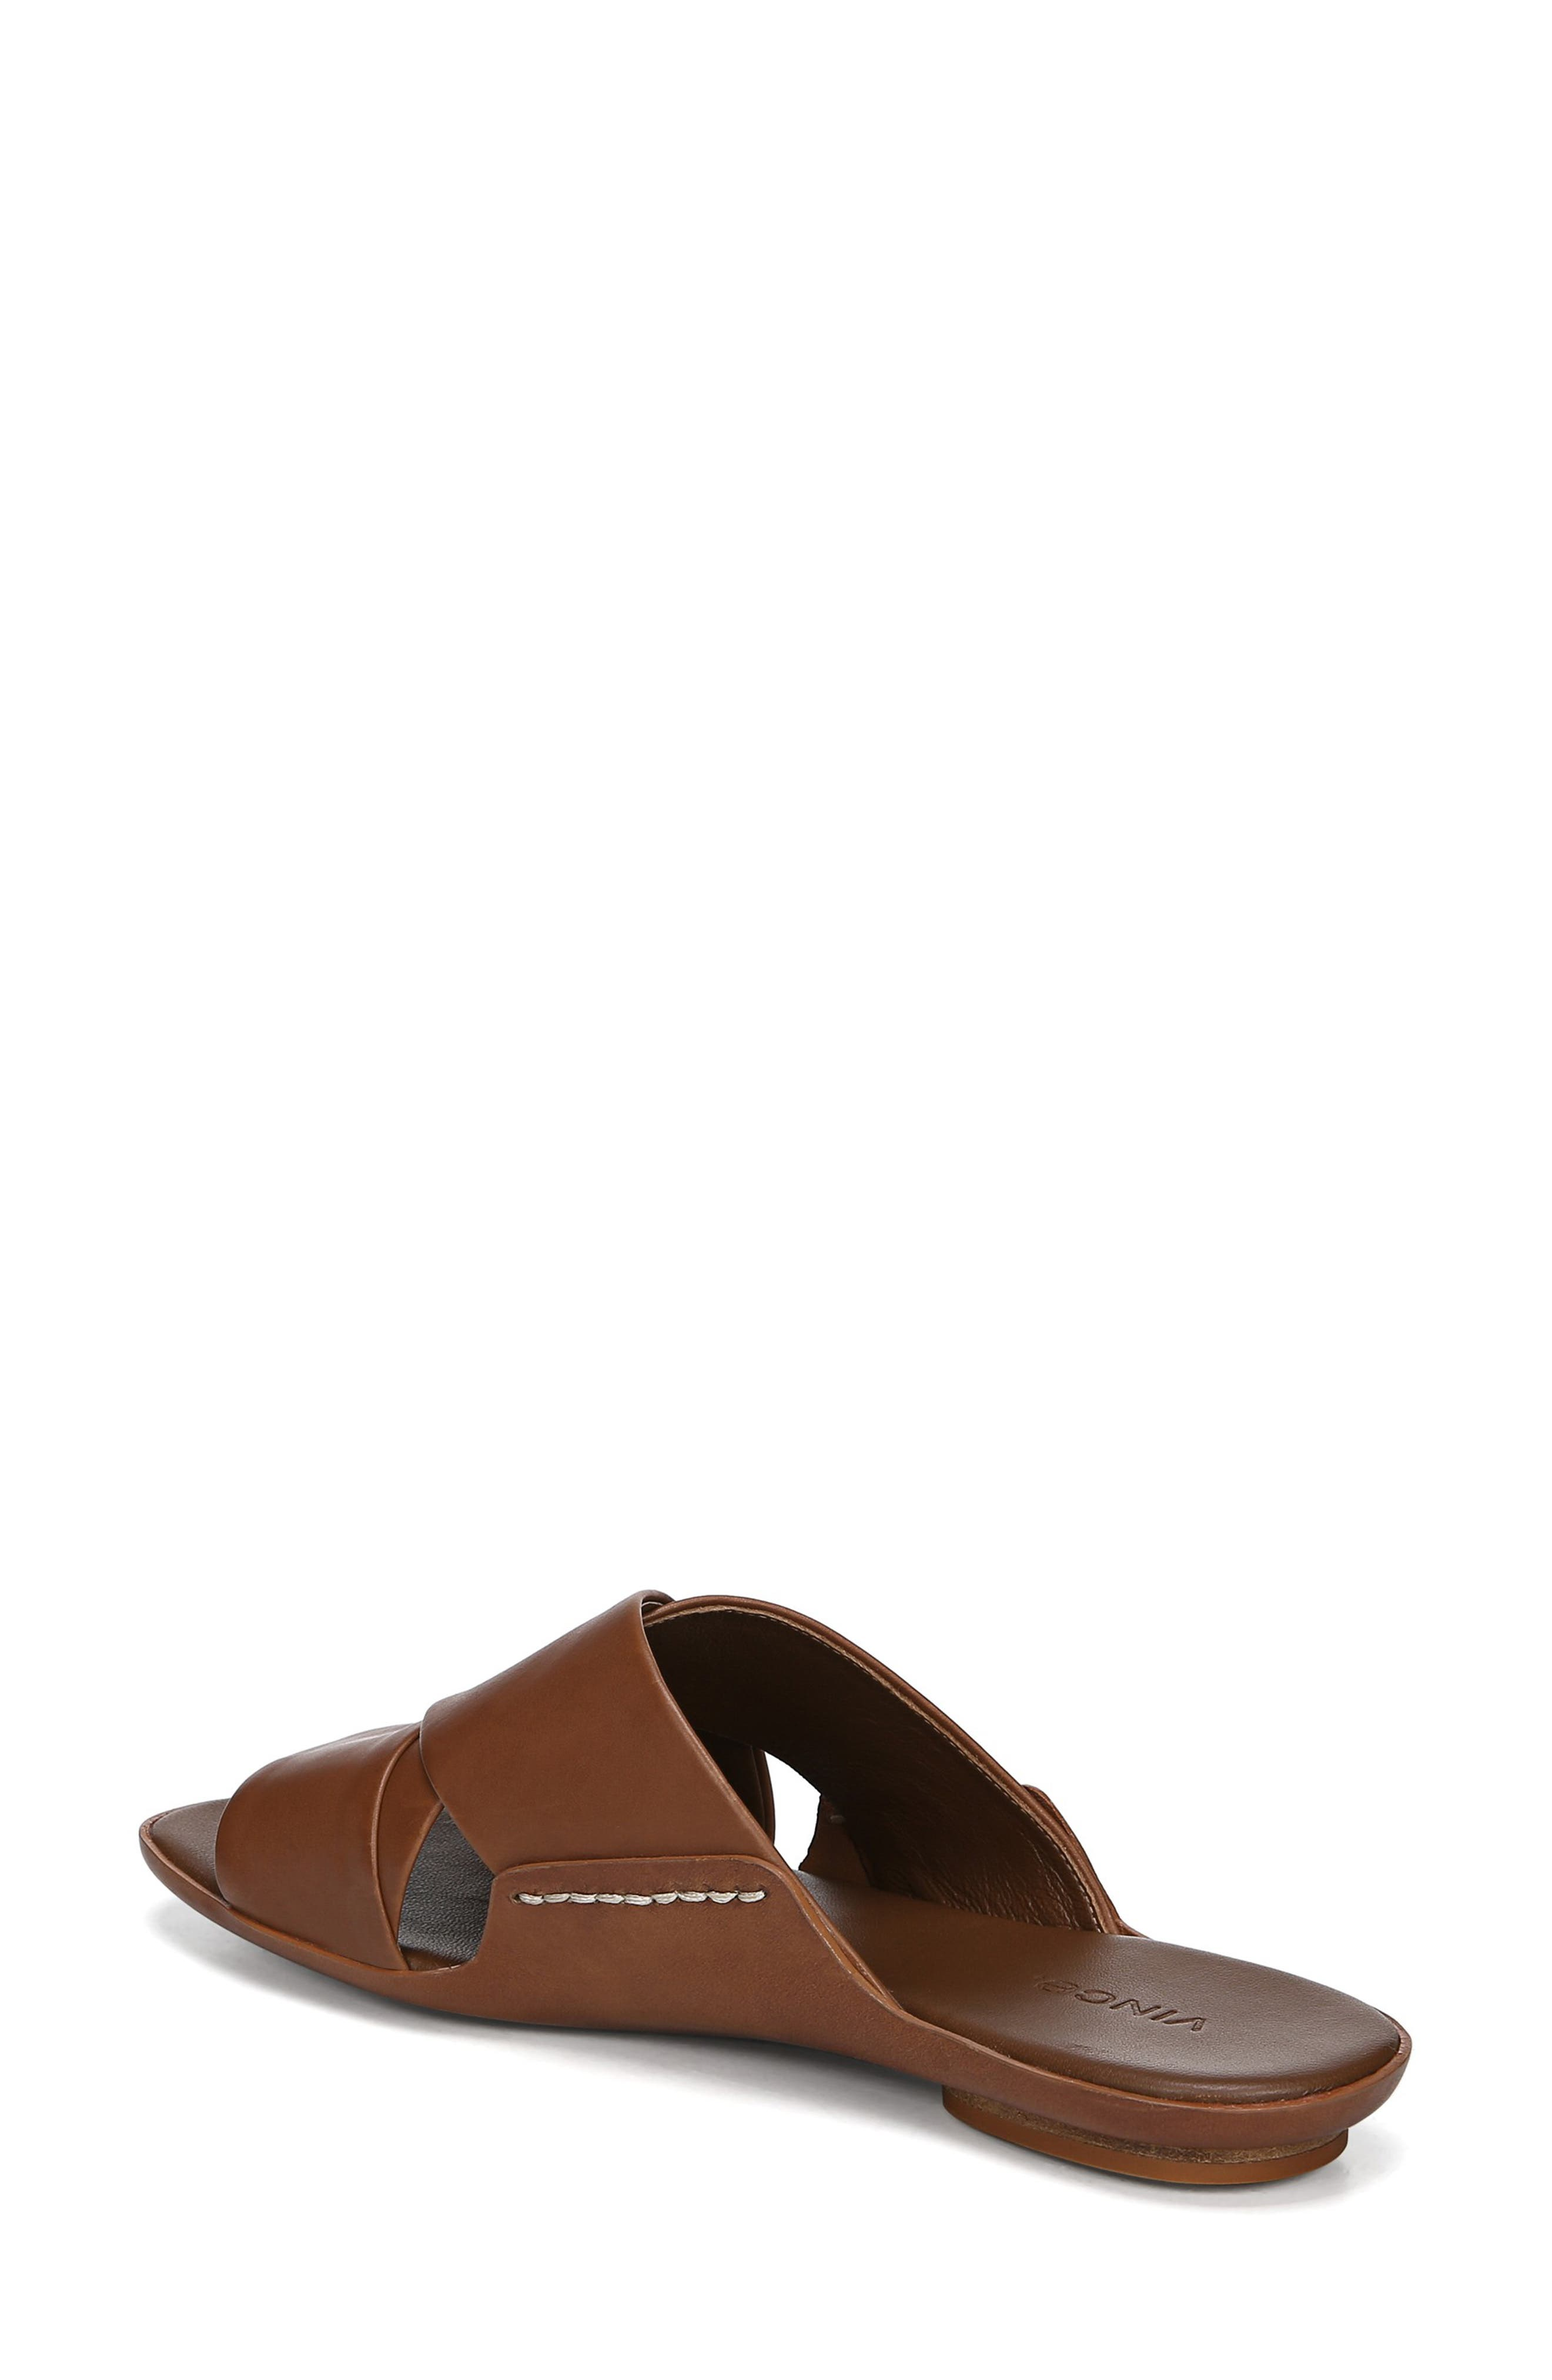 f44f252a242 Sandals Vince for Women